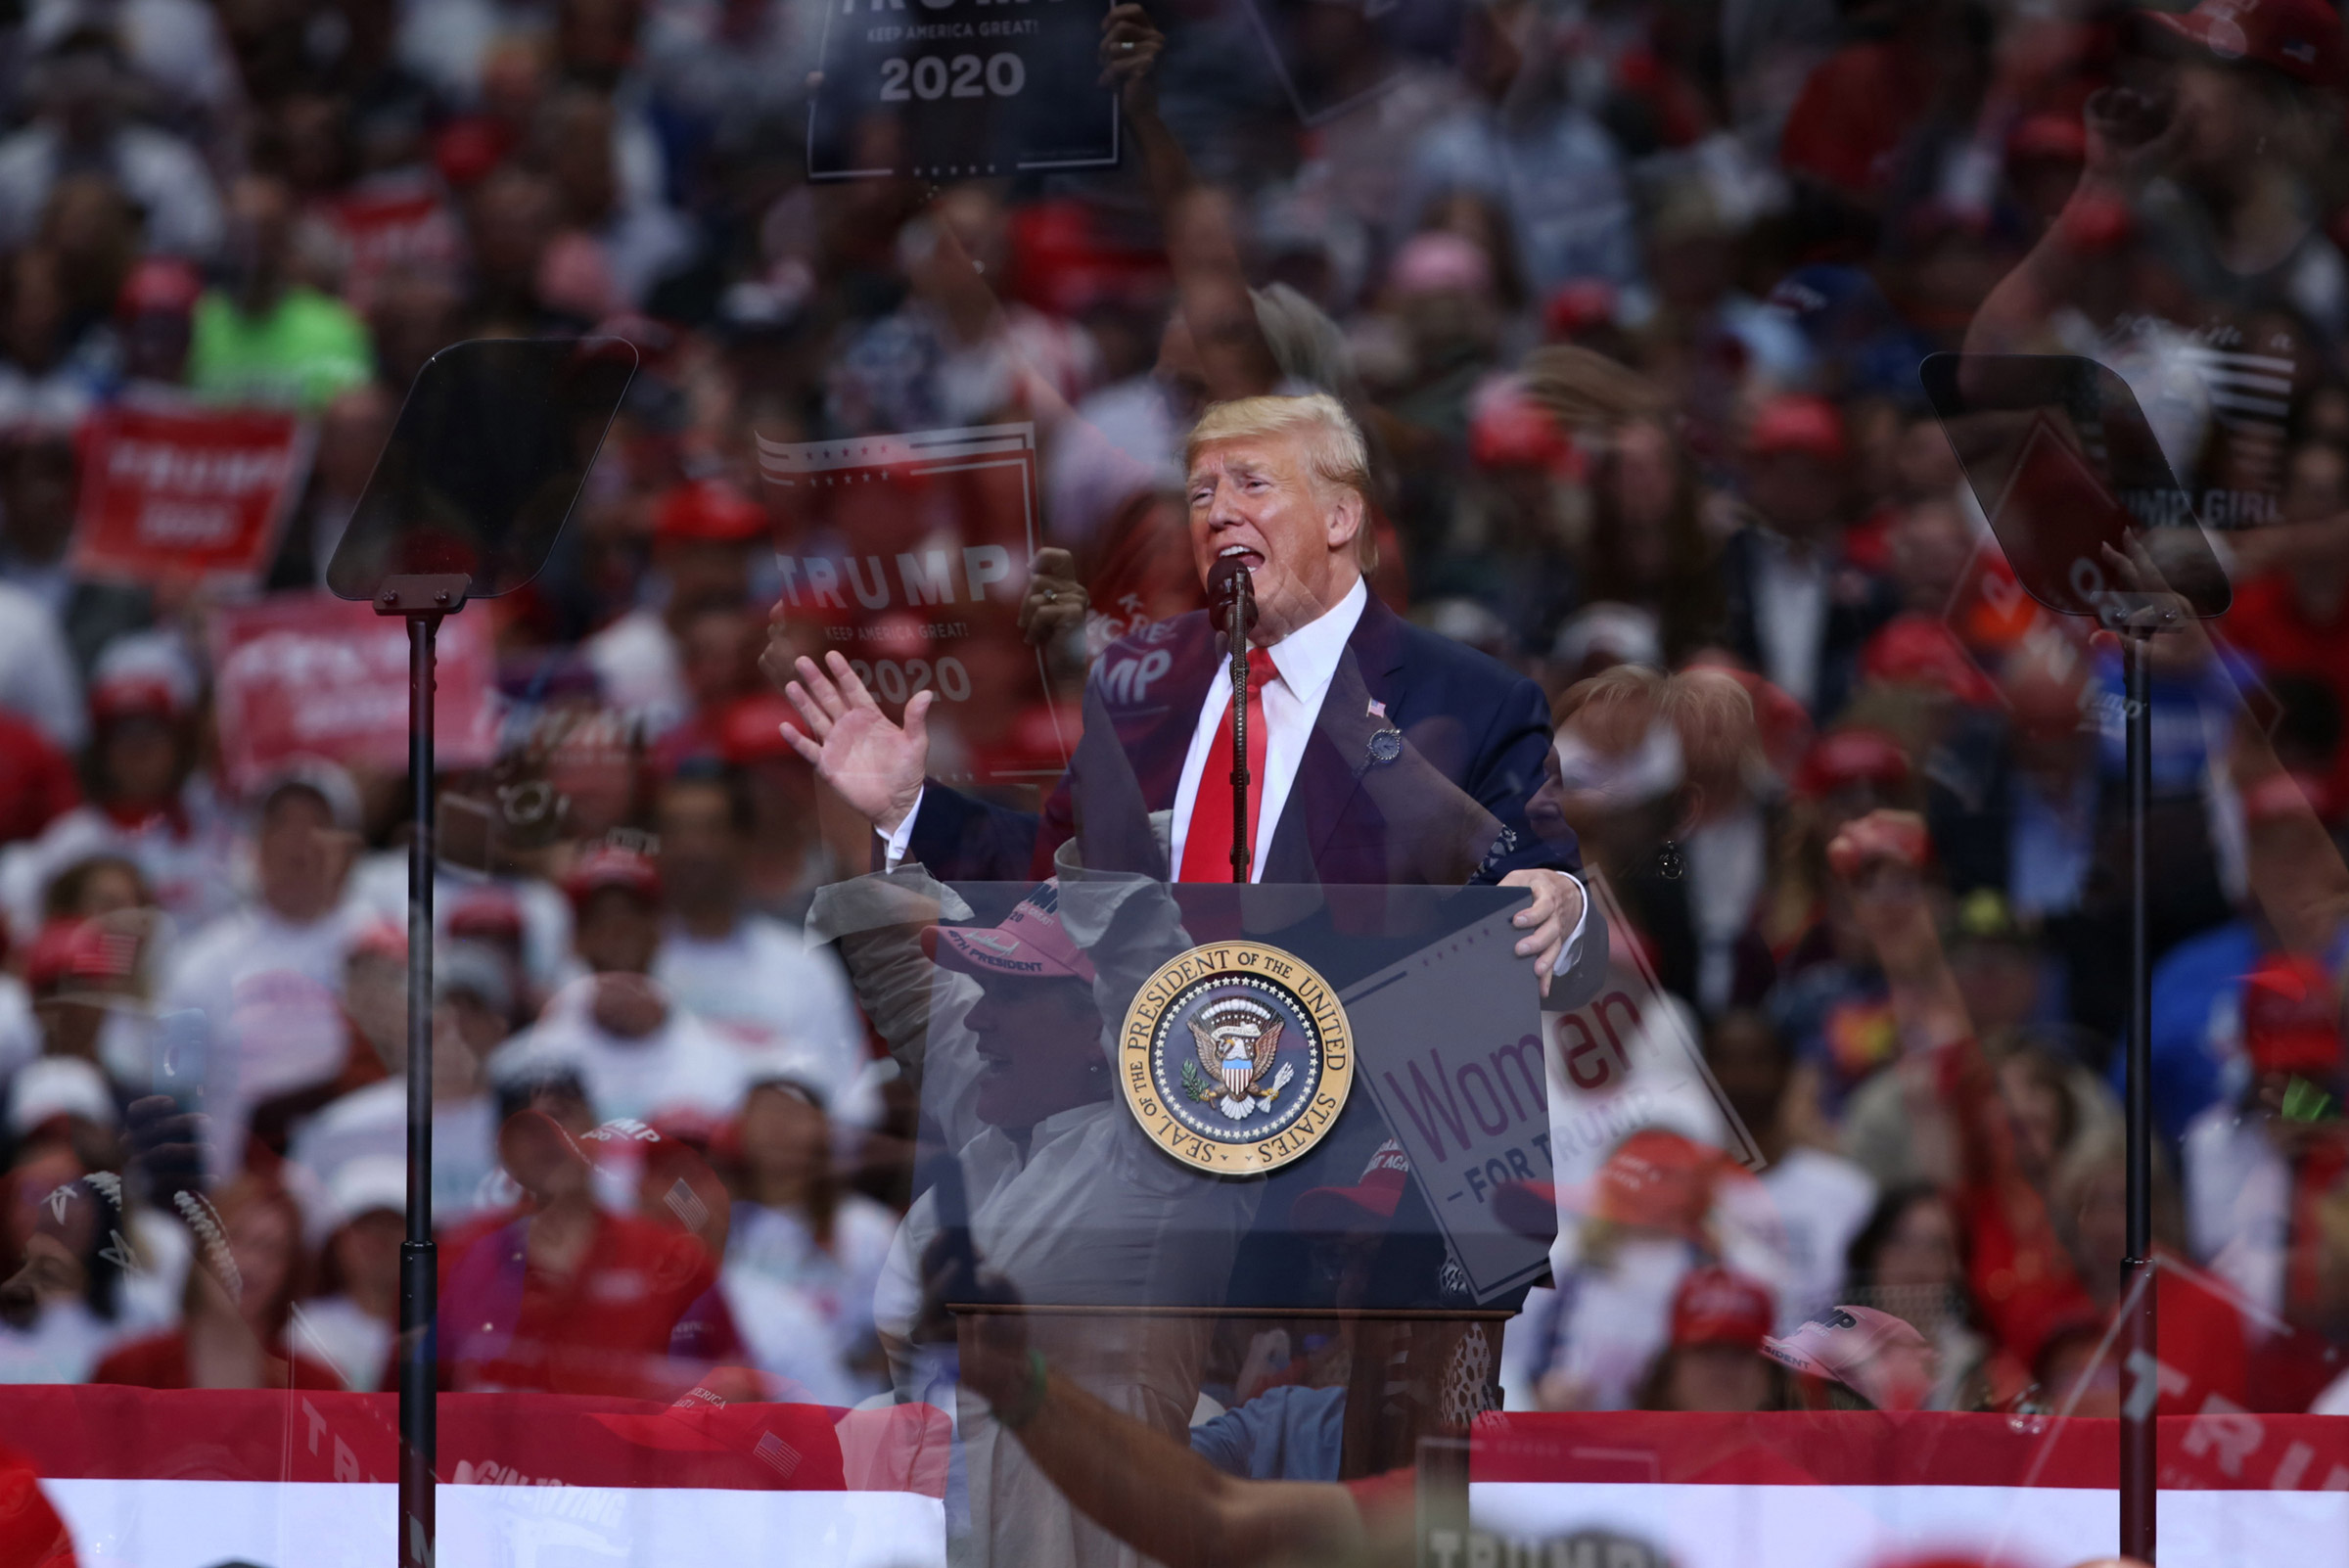 President Donald Trump is seen speaking in this double exposure photograph taken during a rally in Dallas, on Oct. 17, 2019.